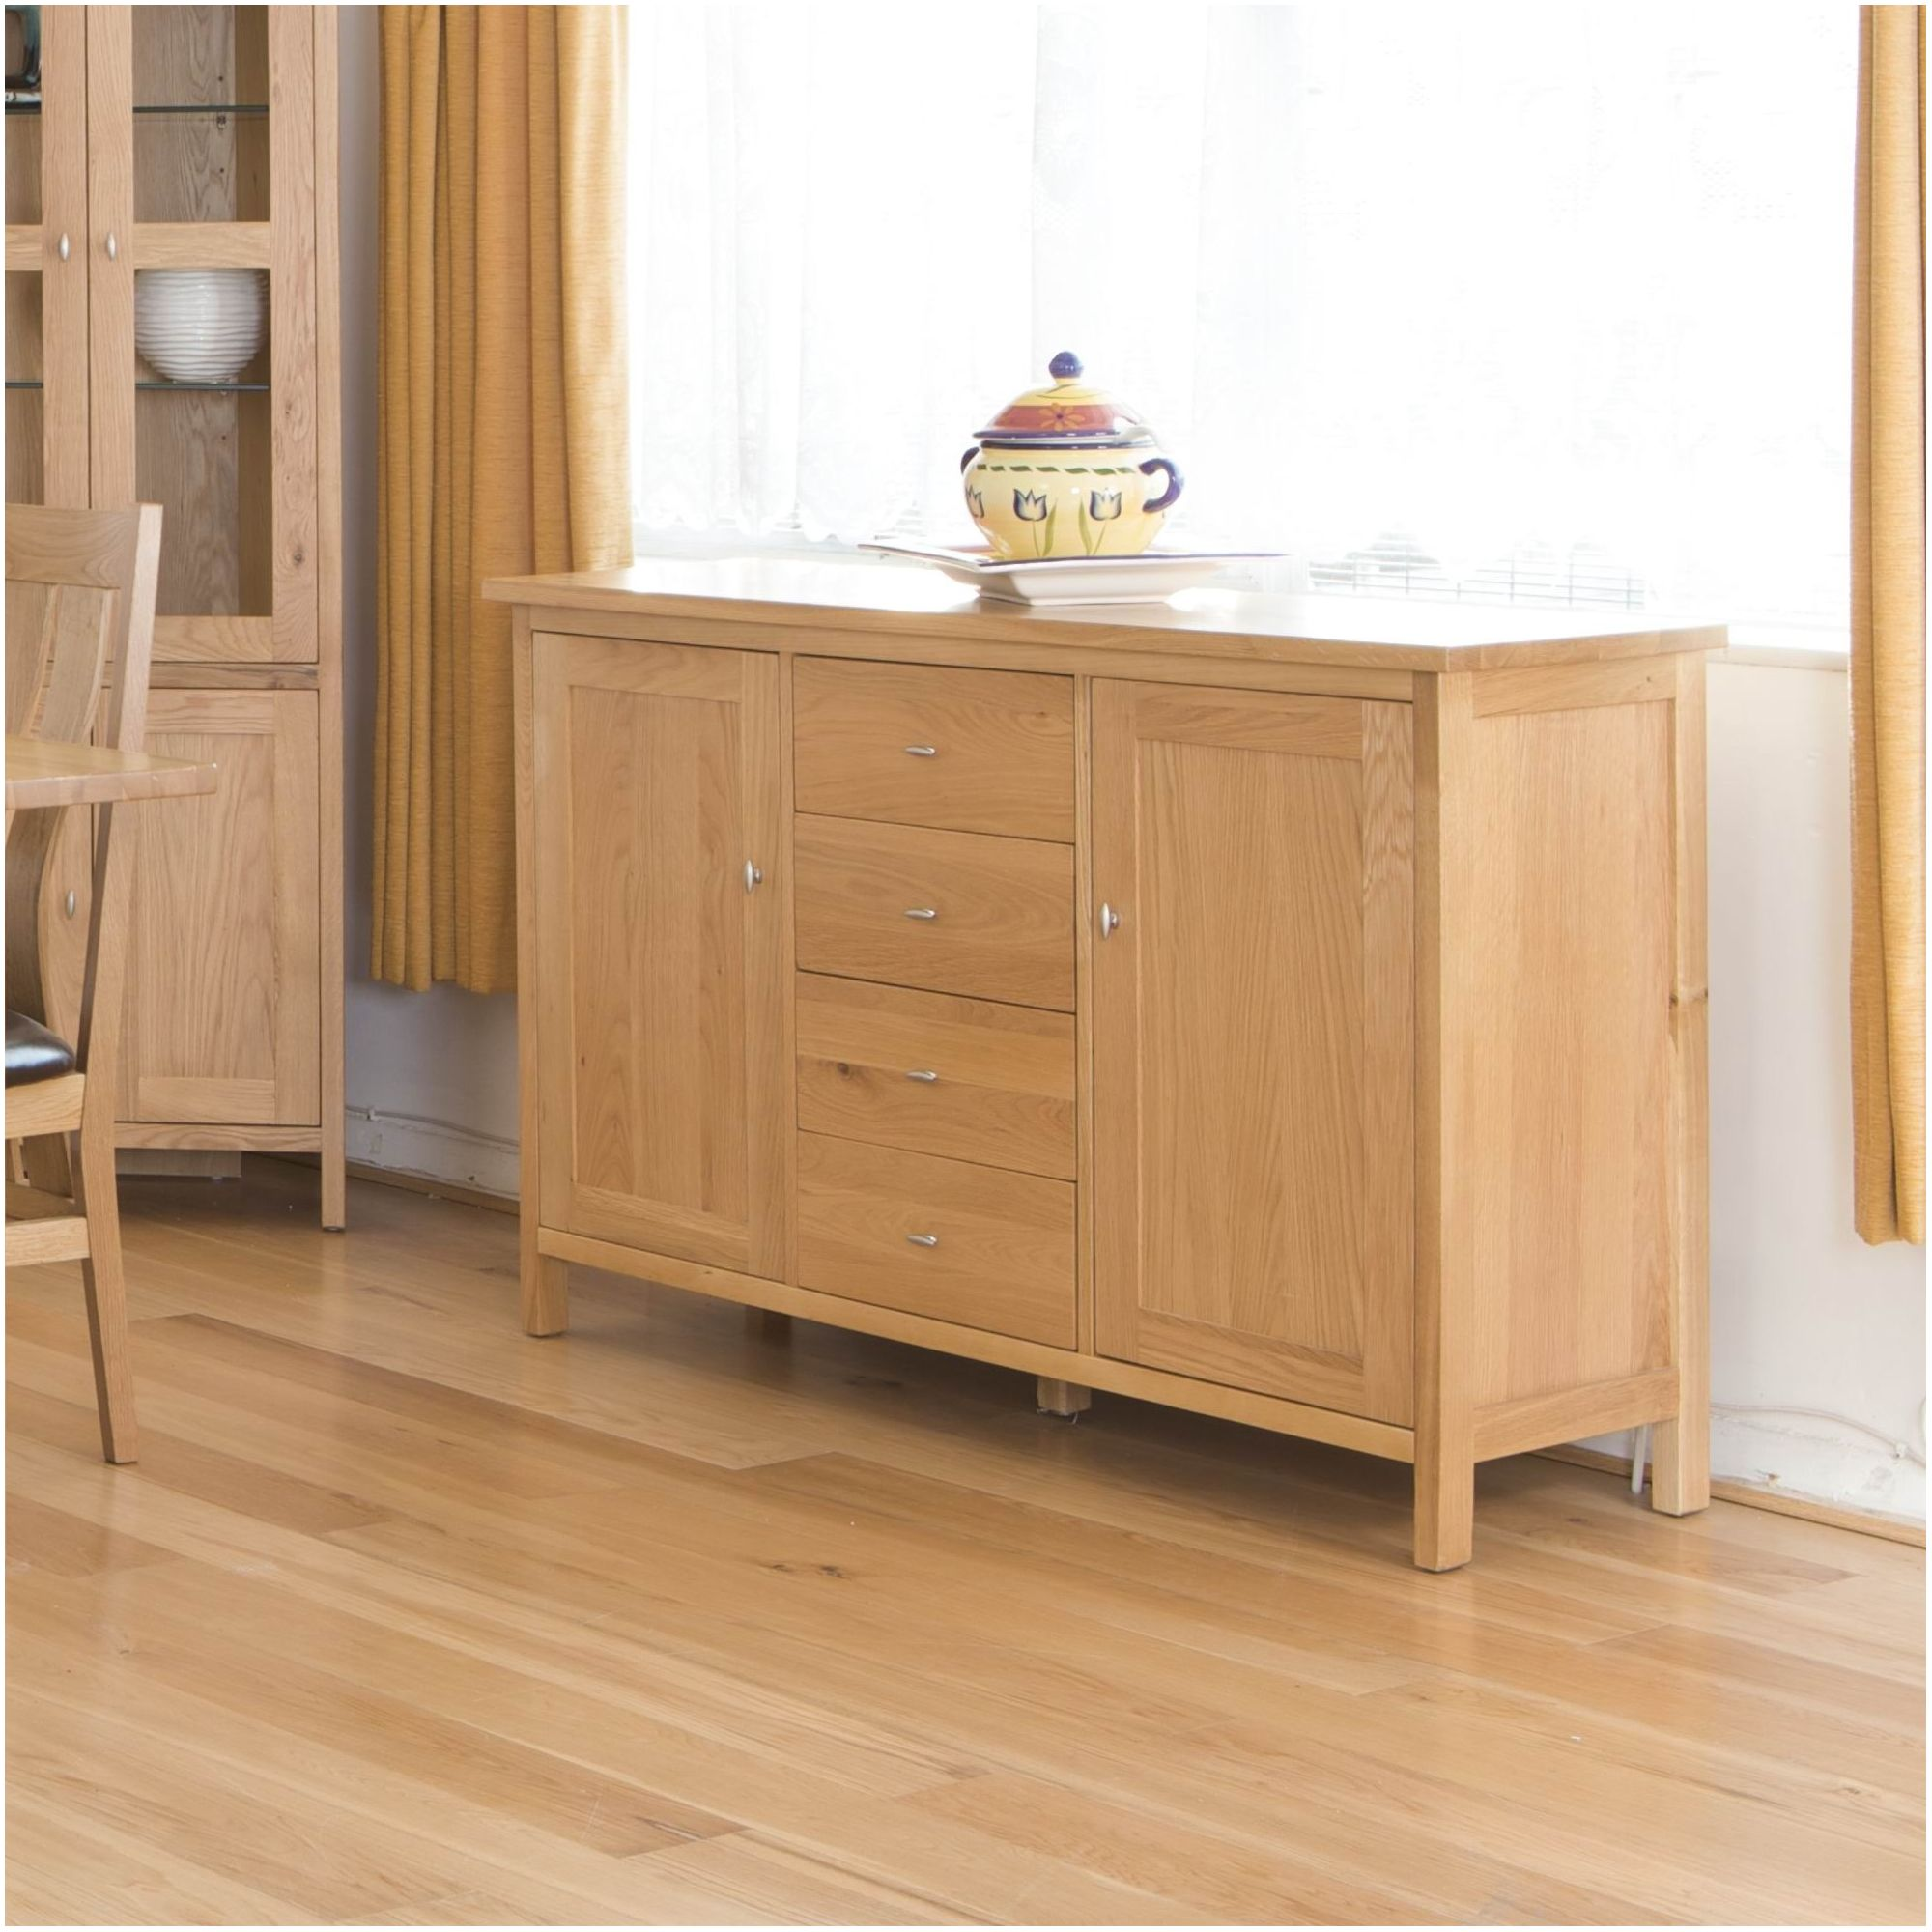 Oakinsen Balmain Large Sideboard at Tesco Direct